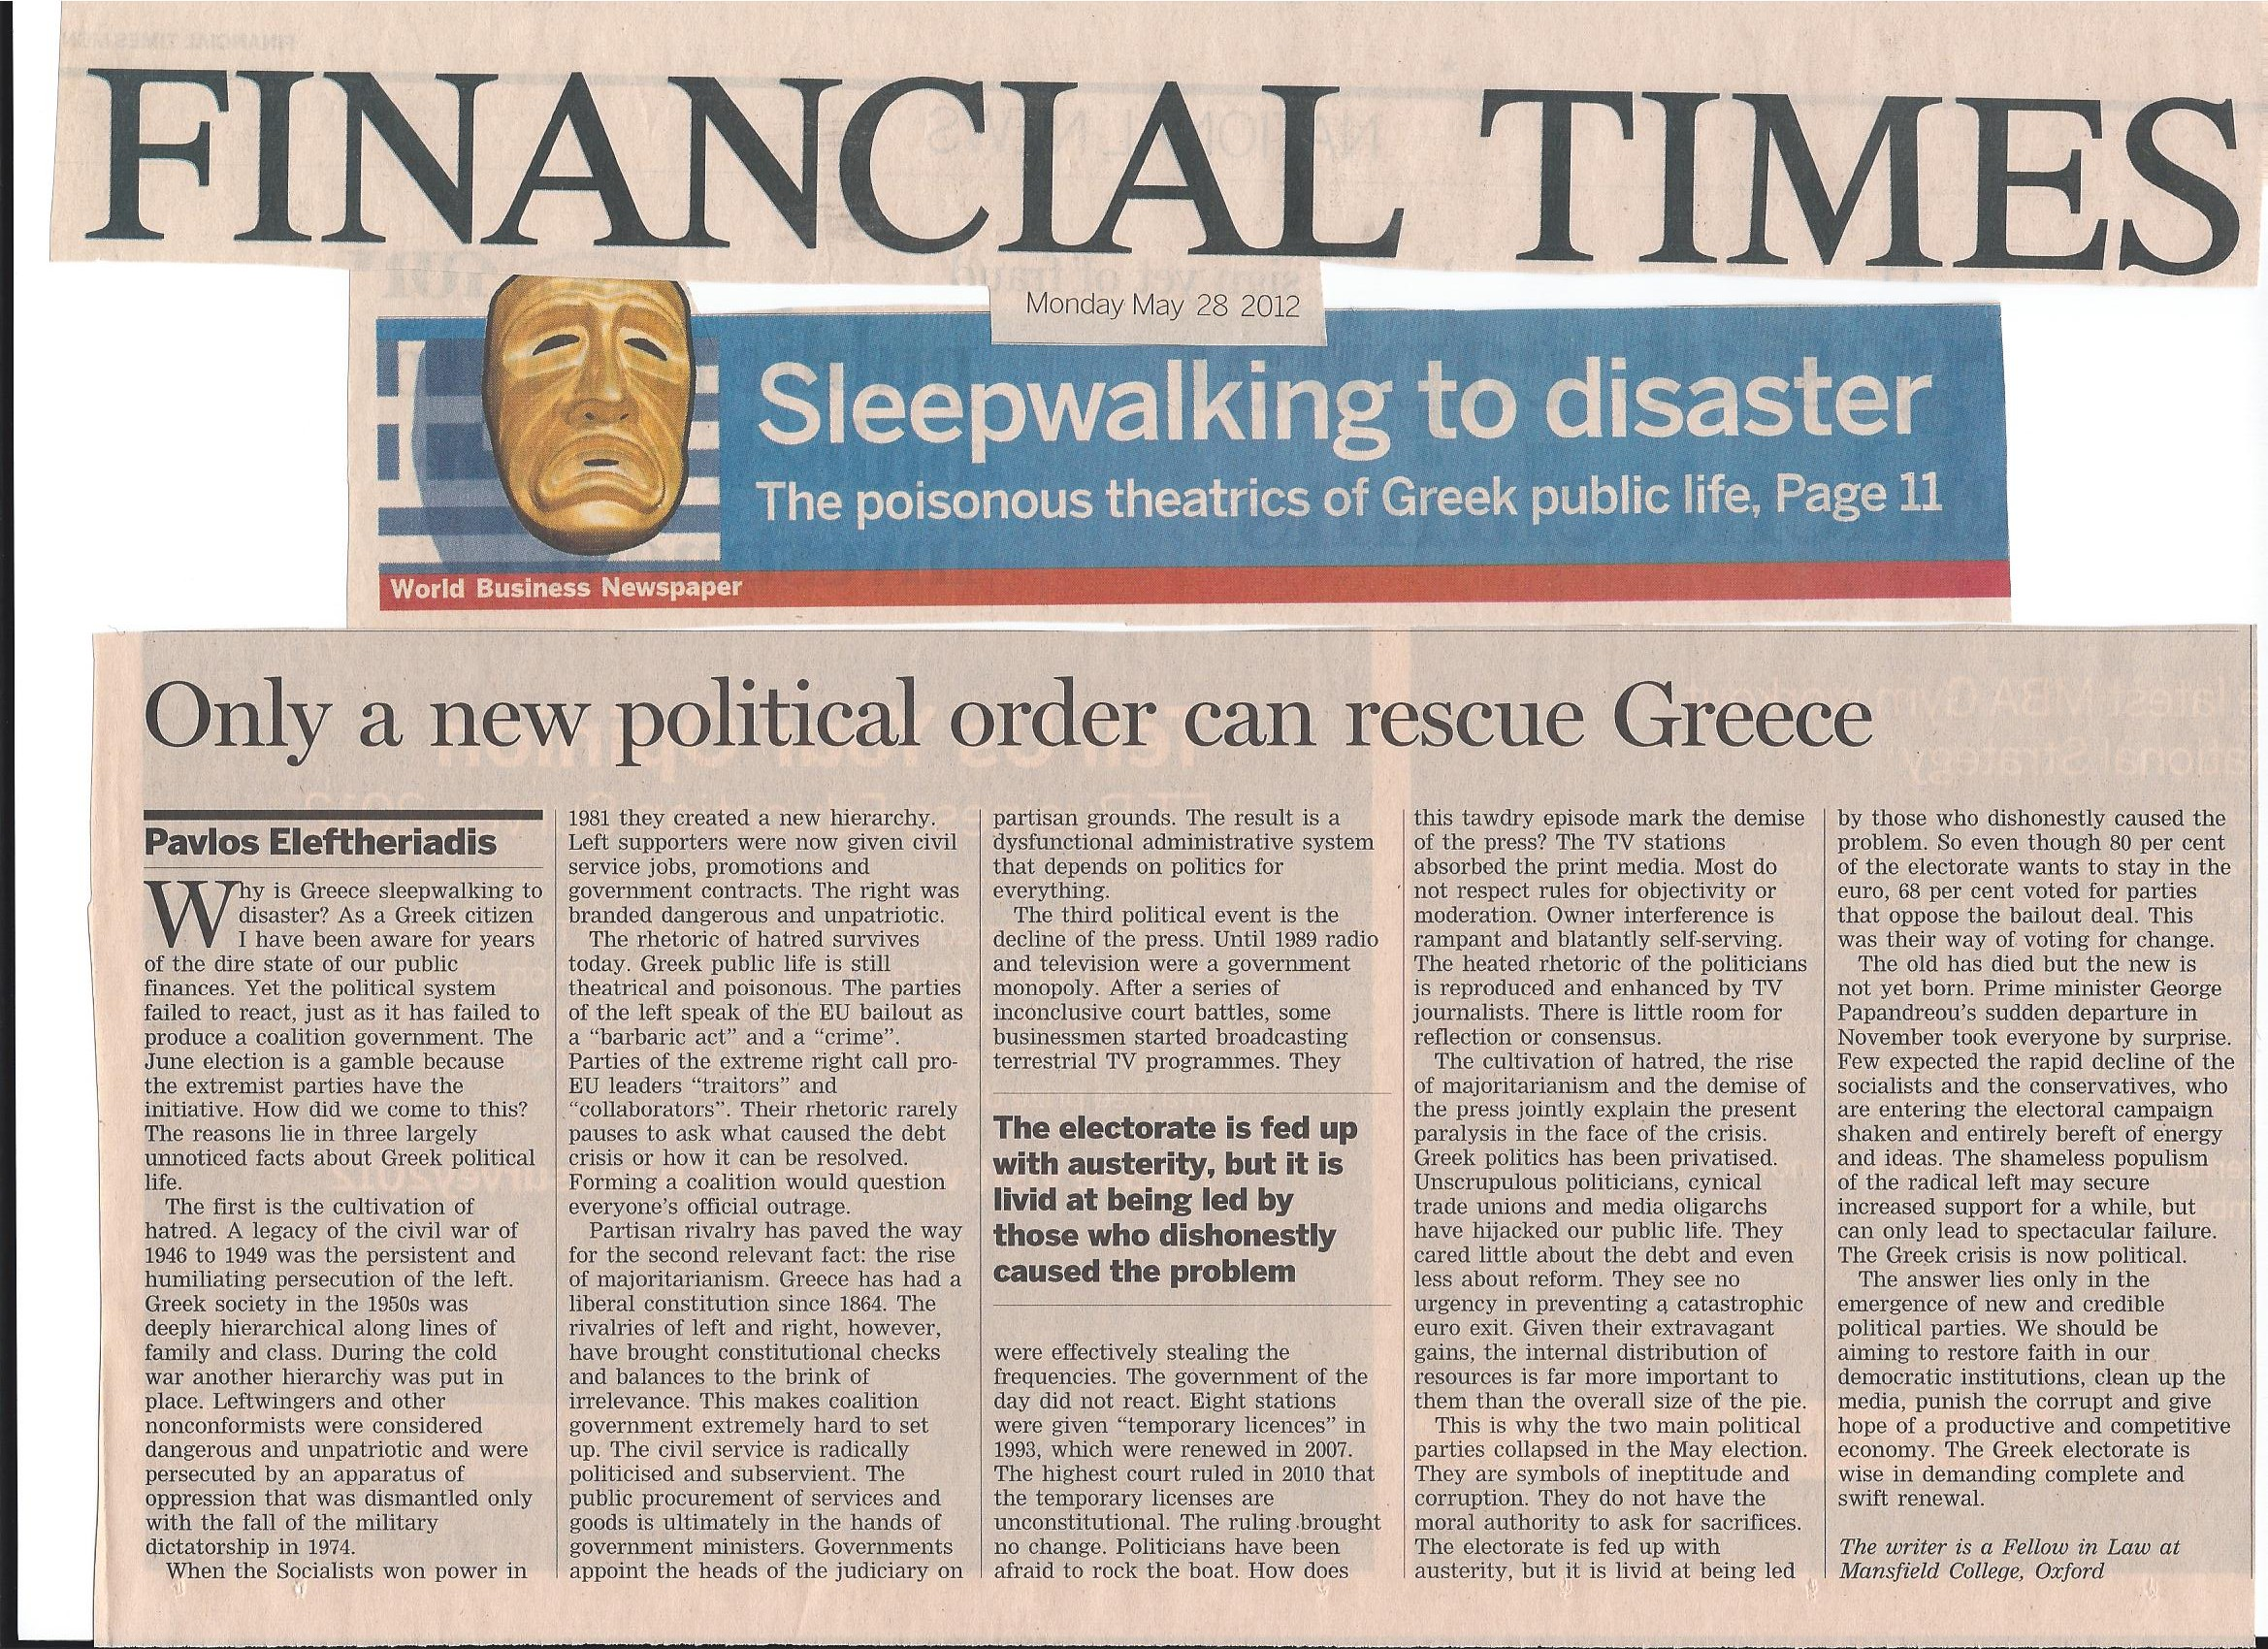 FT_Article_2012_05_28.jpg